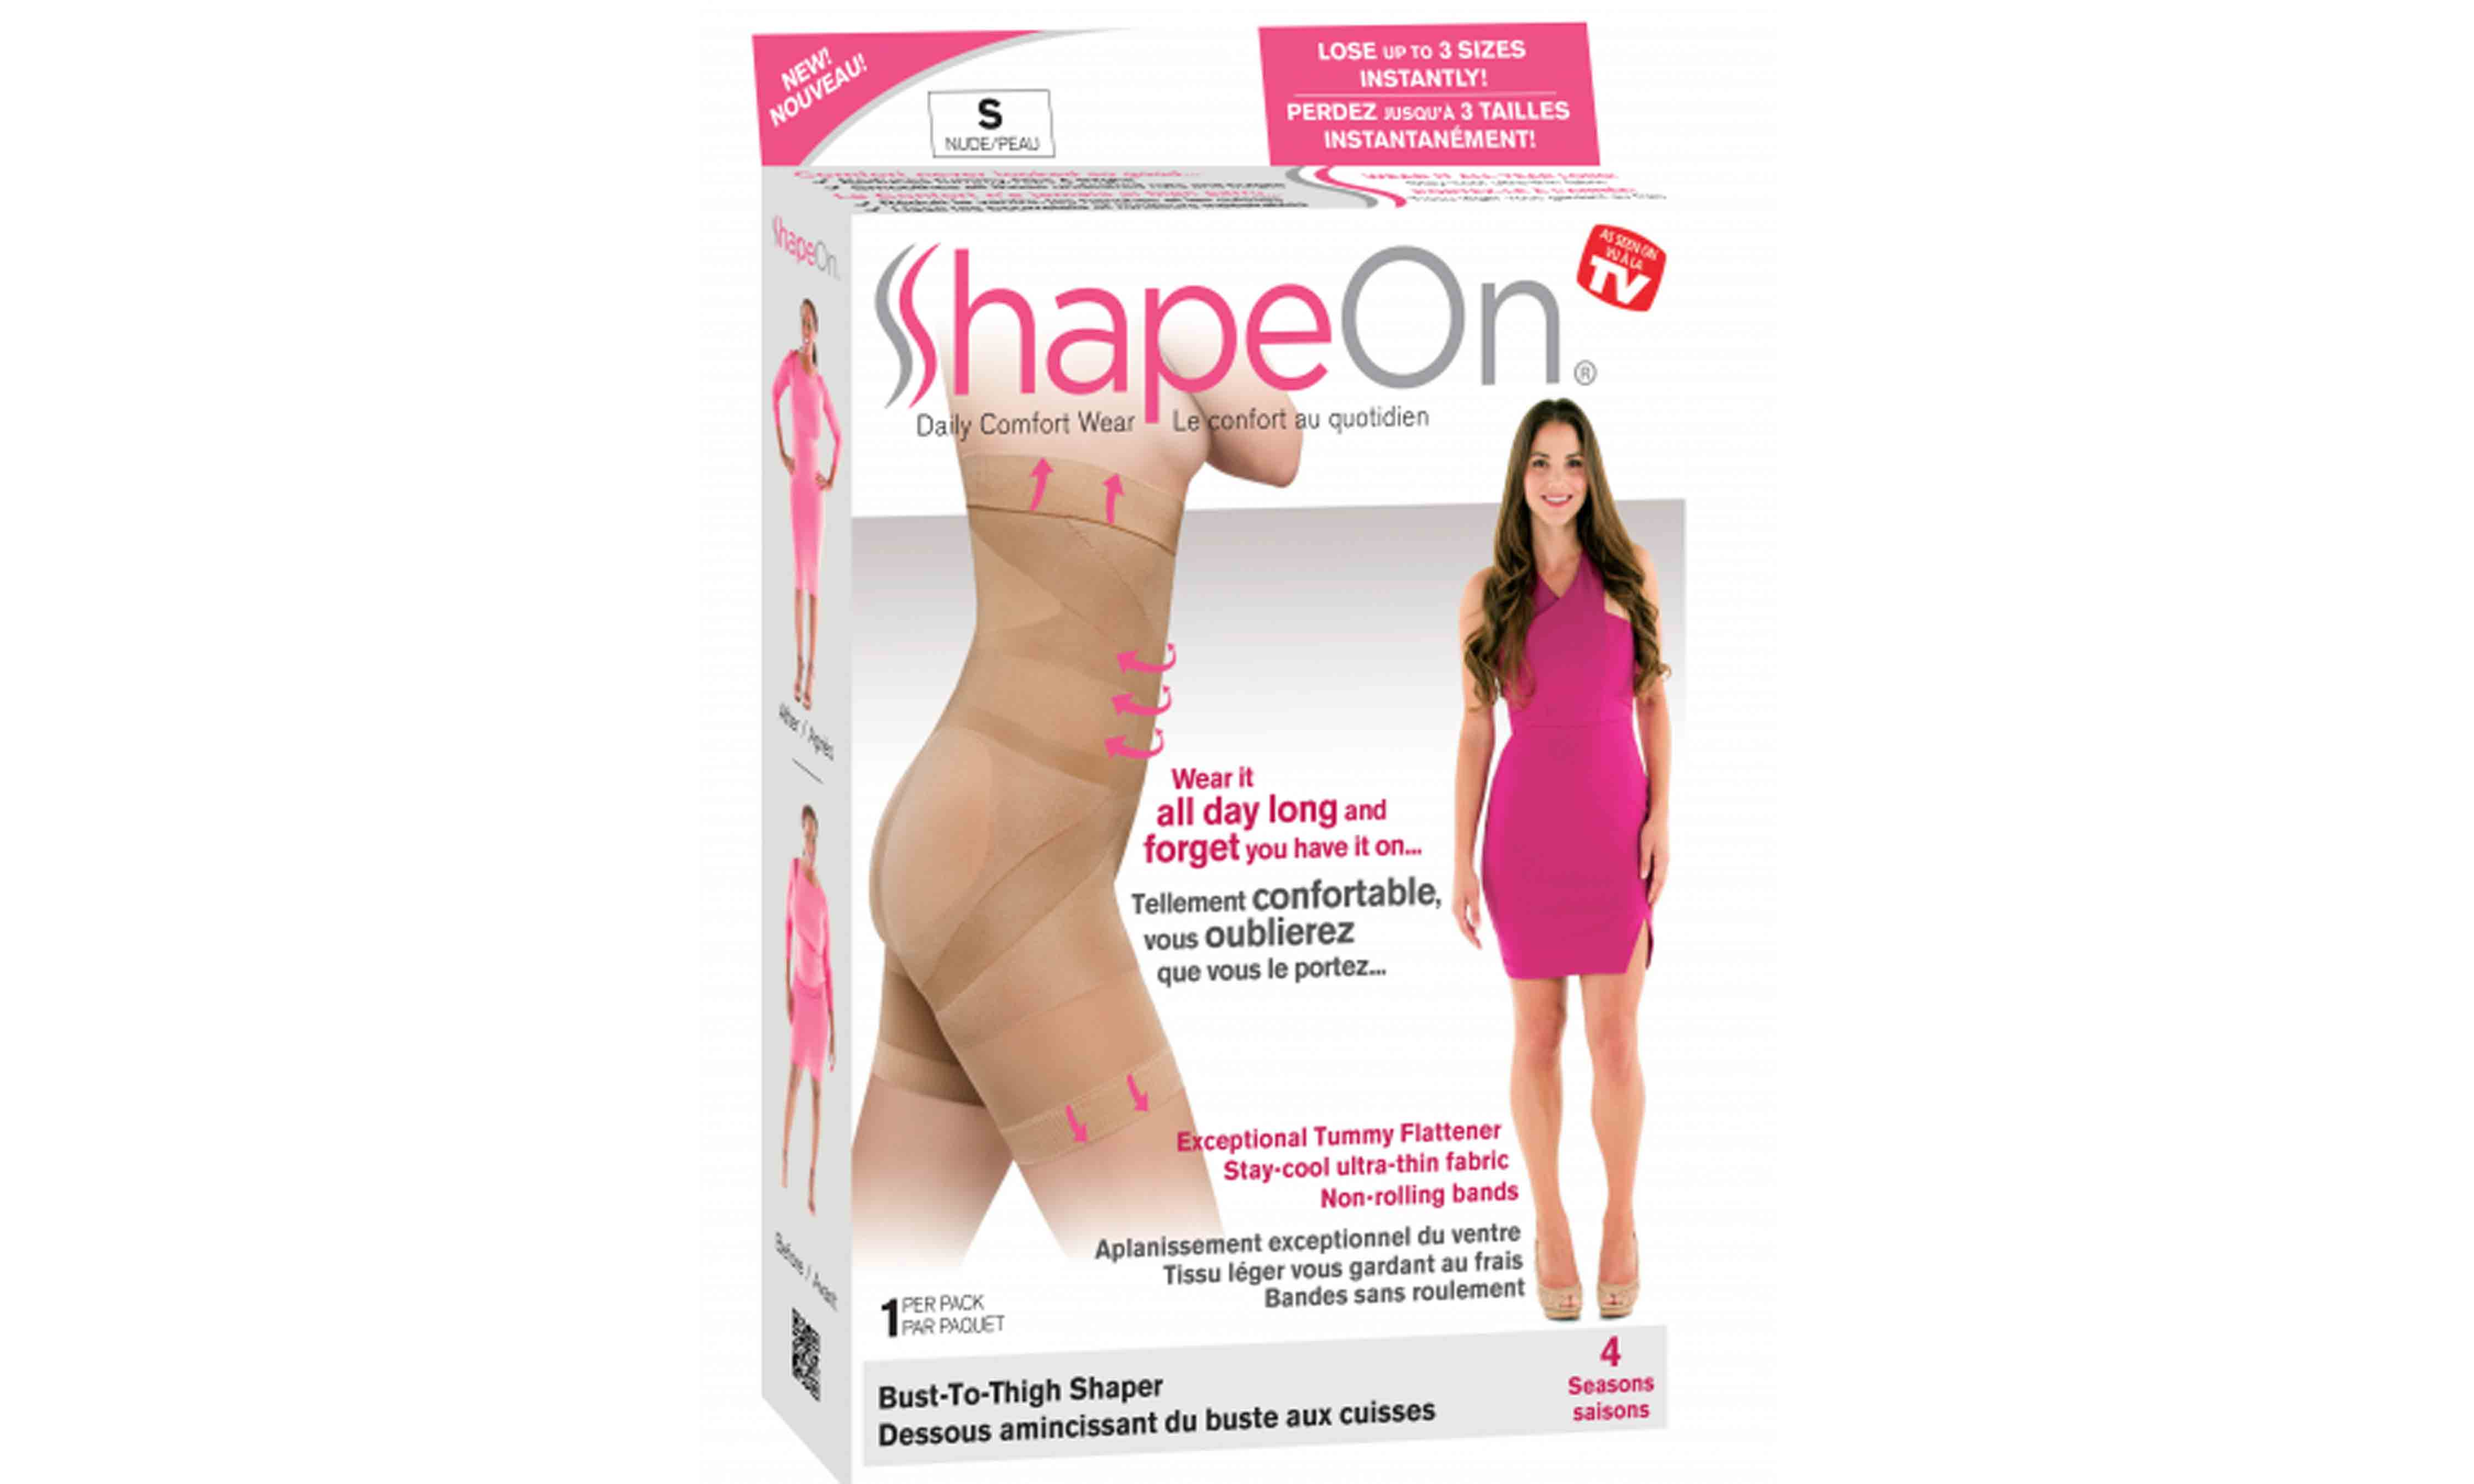 ShapeOn Review